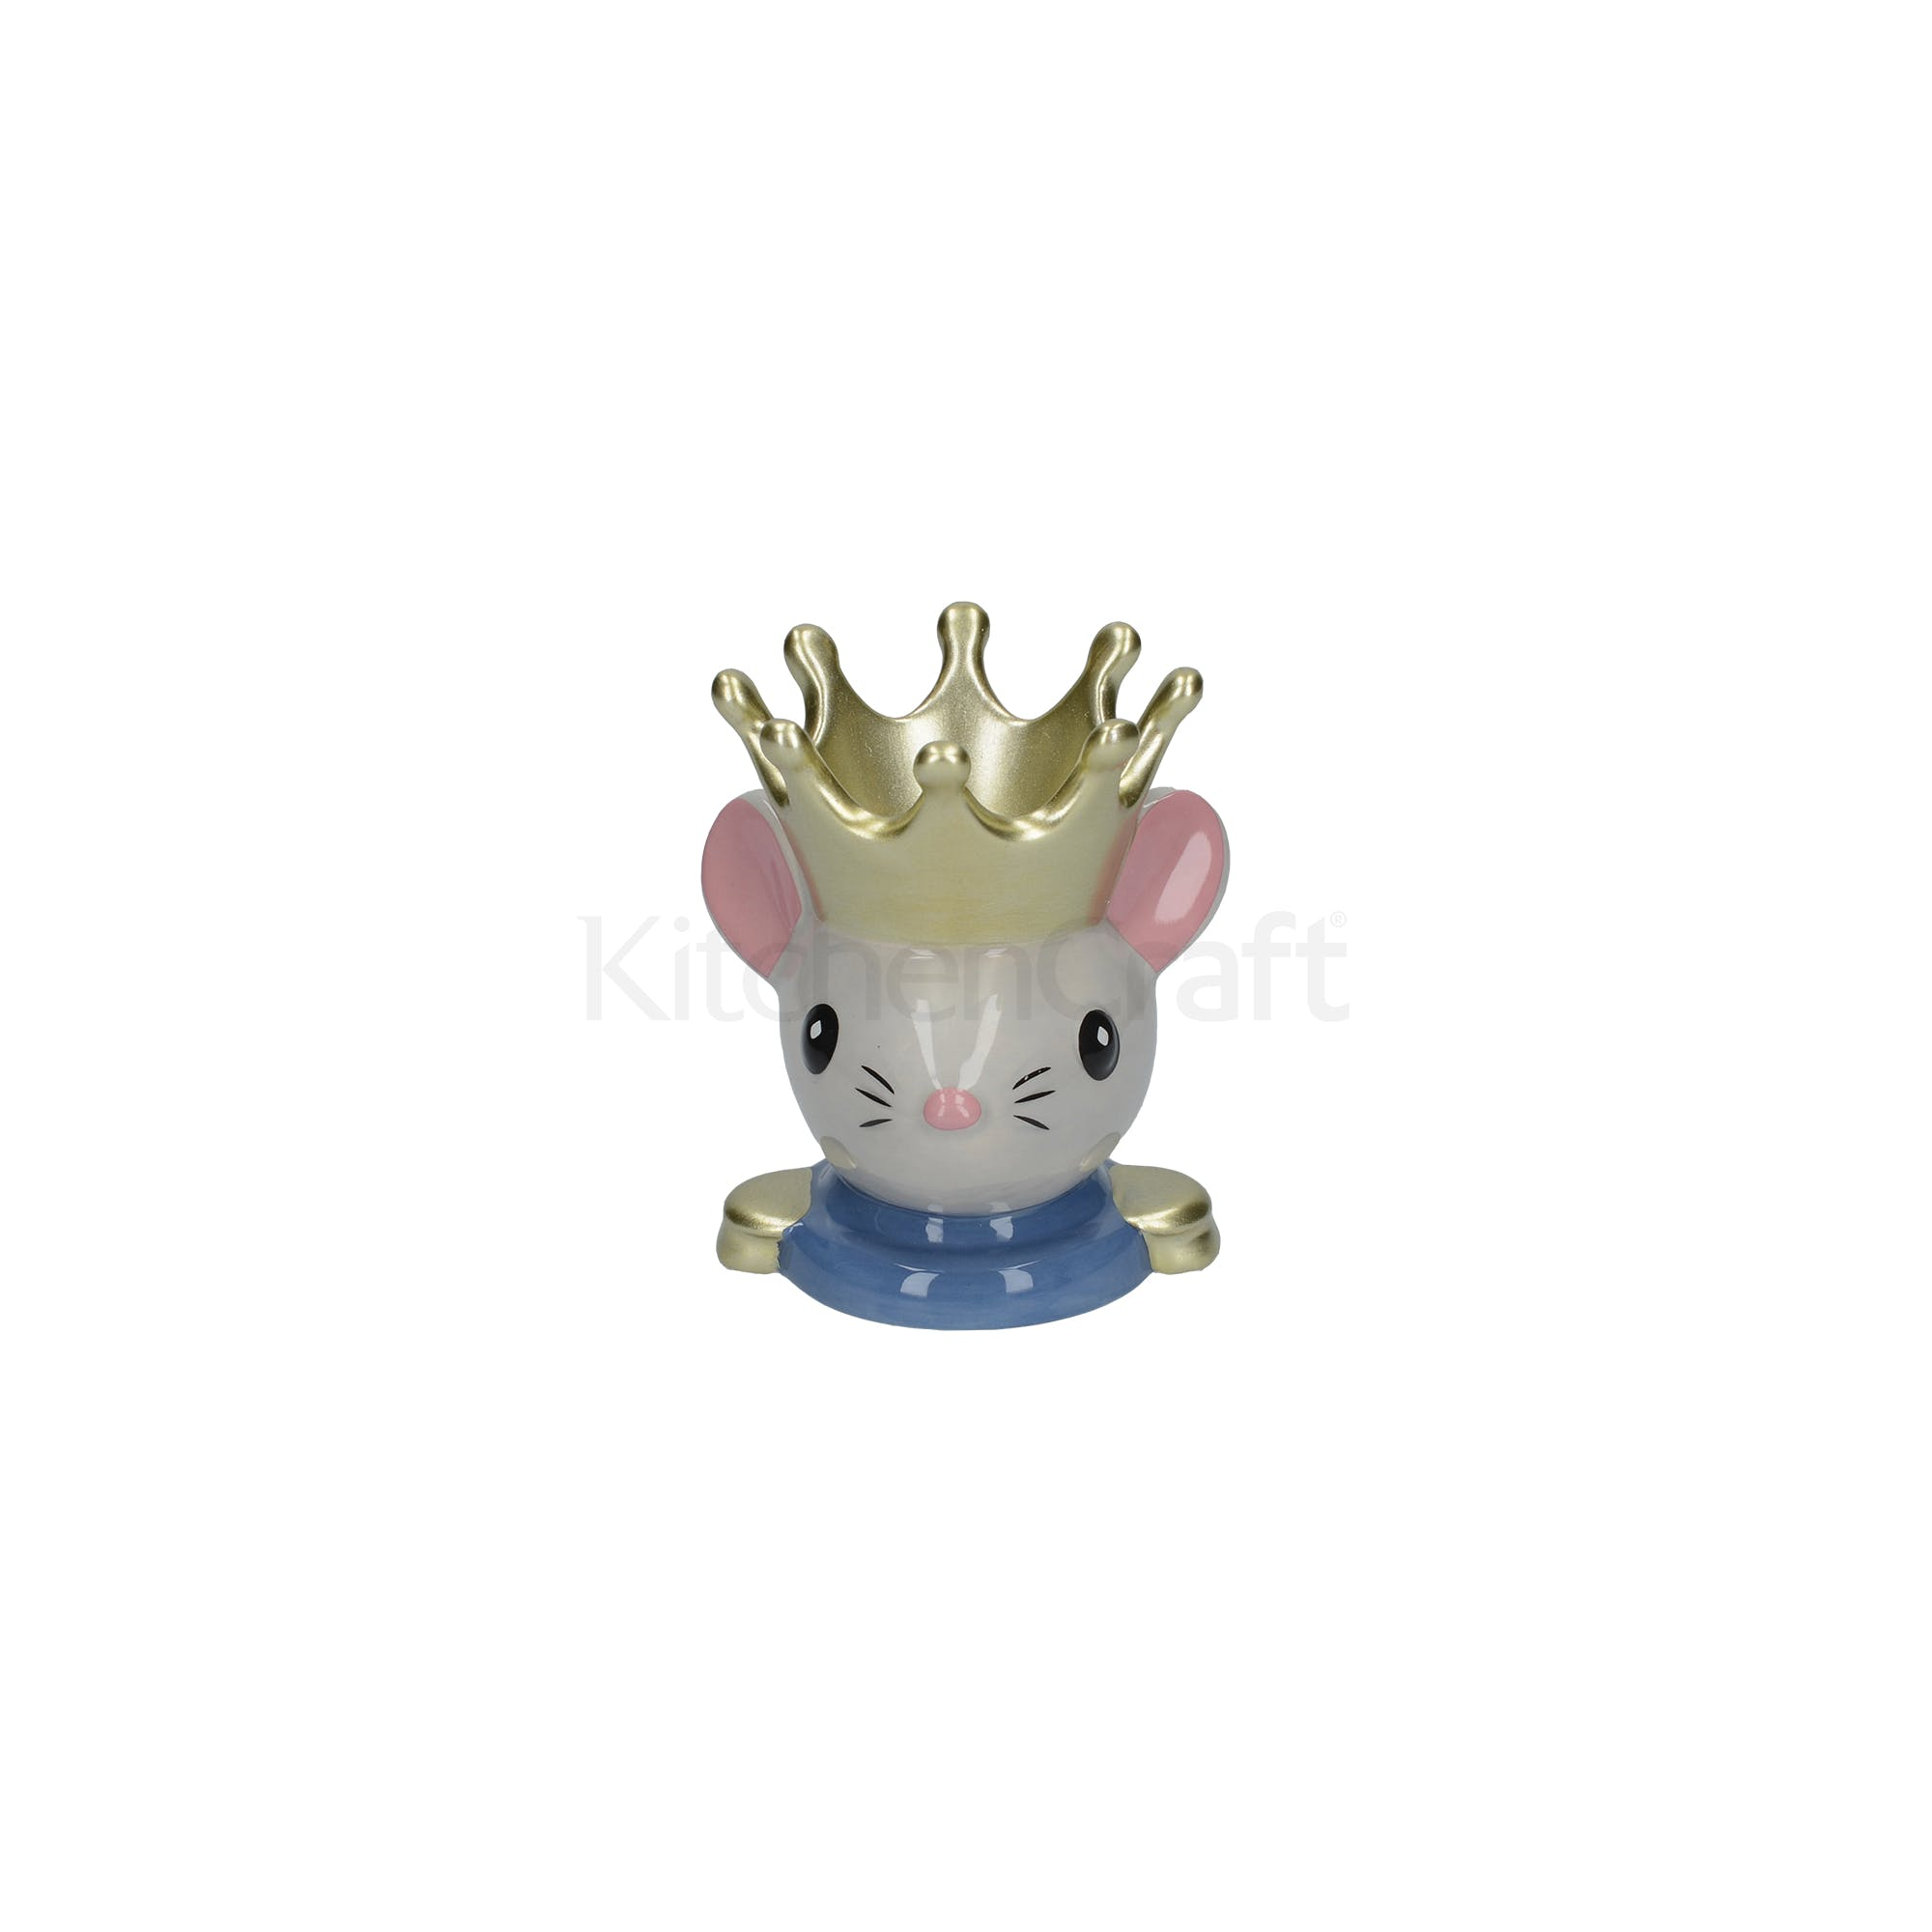 KitchenCraft The Nutcracker Collection Mouse King Egg Cup | Egg Cups